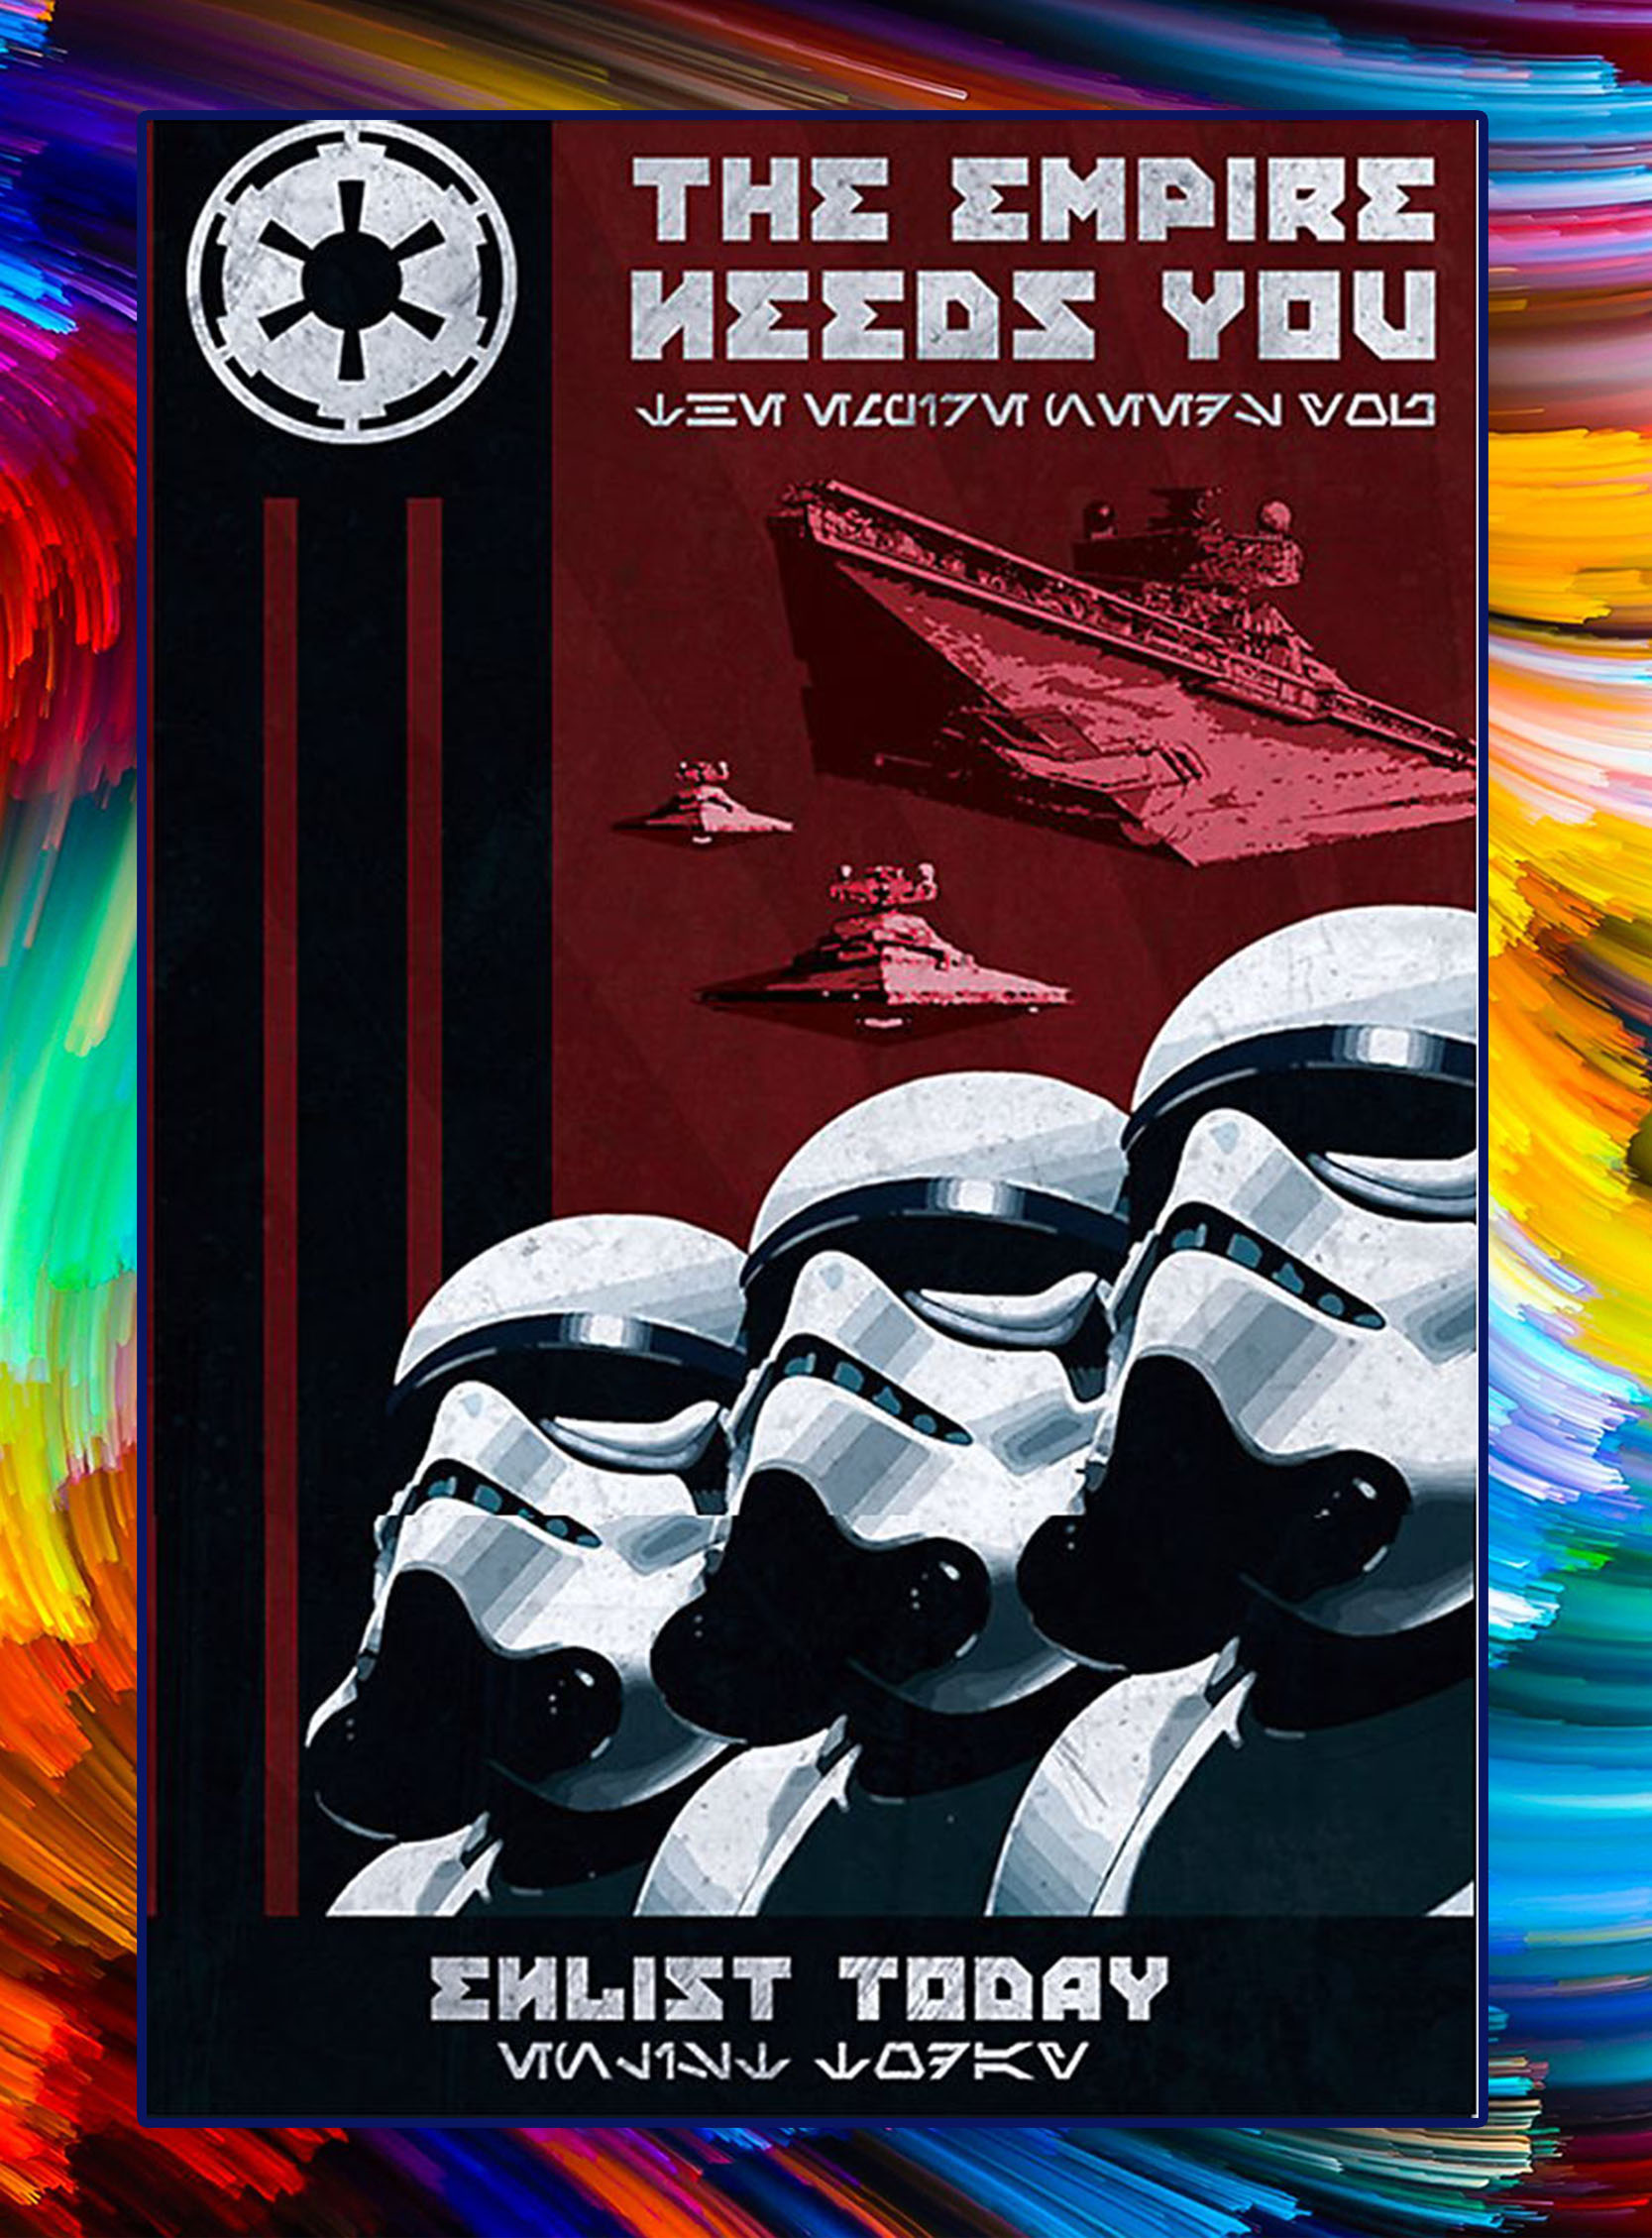 The empire needs you enlist today poster - A2